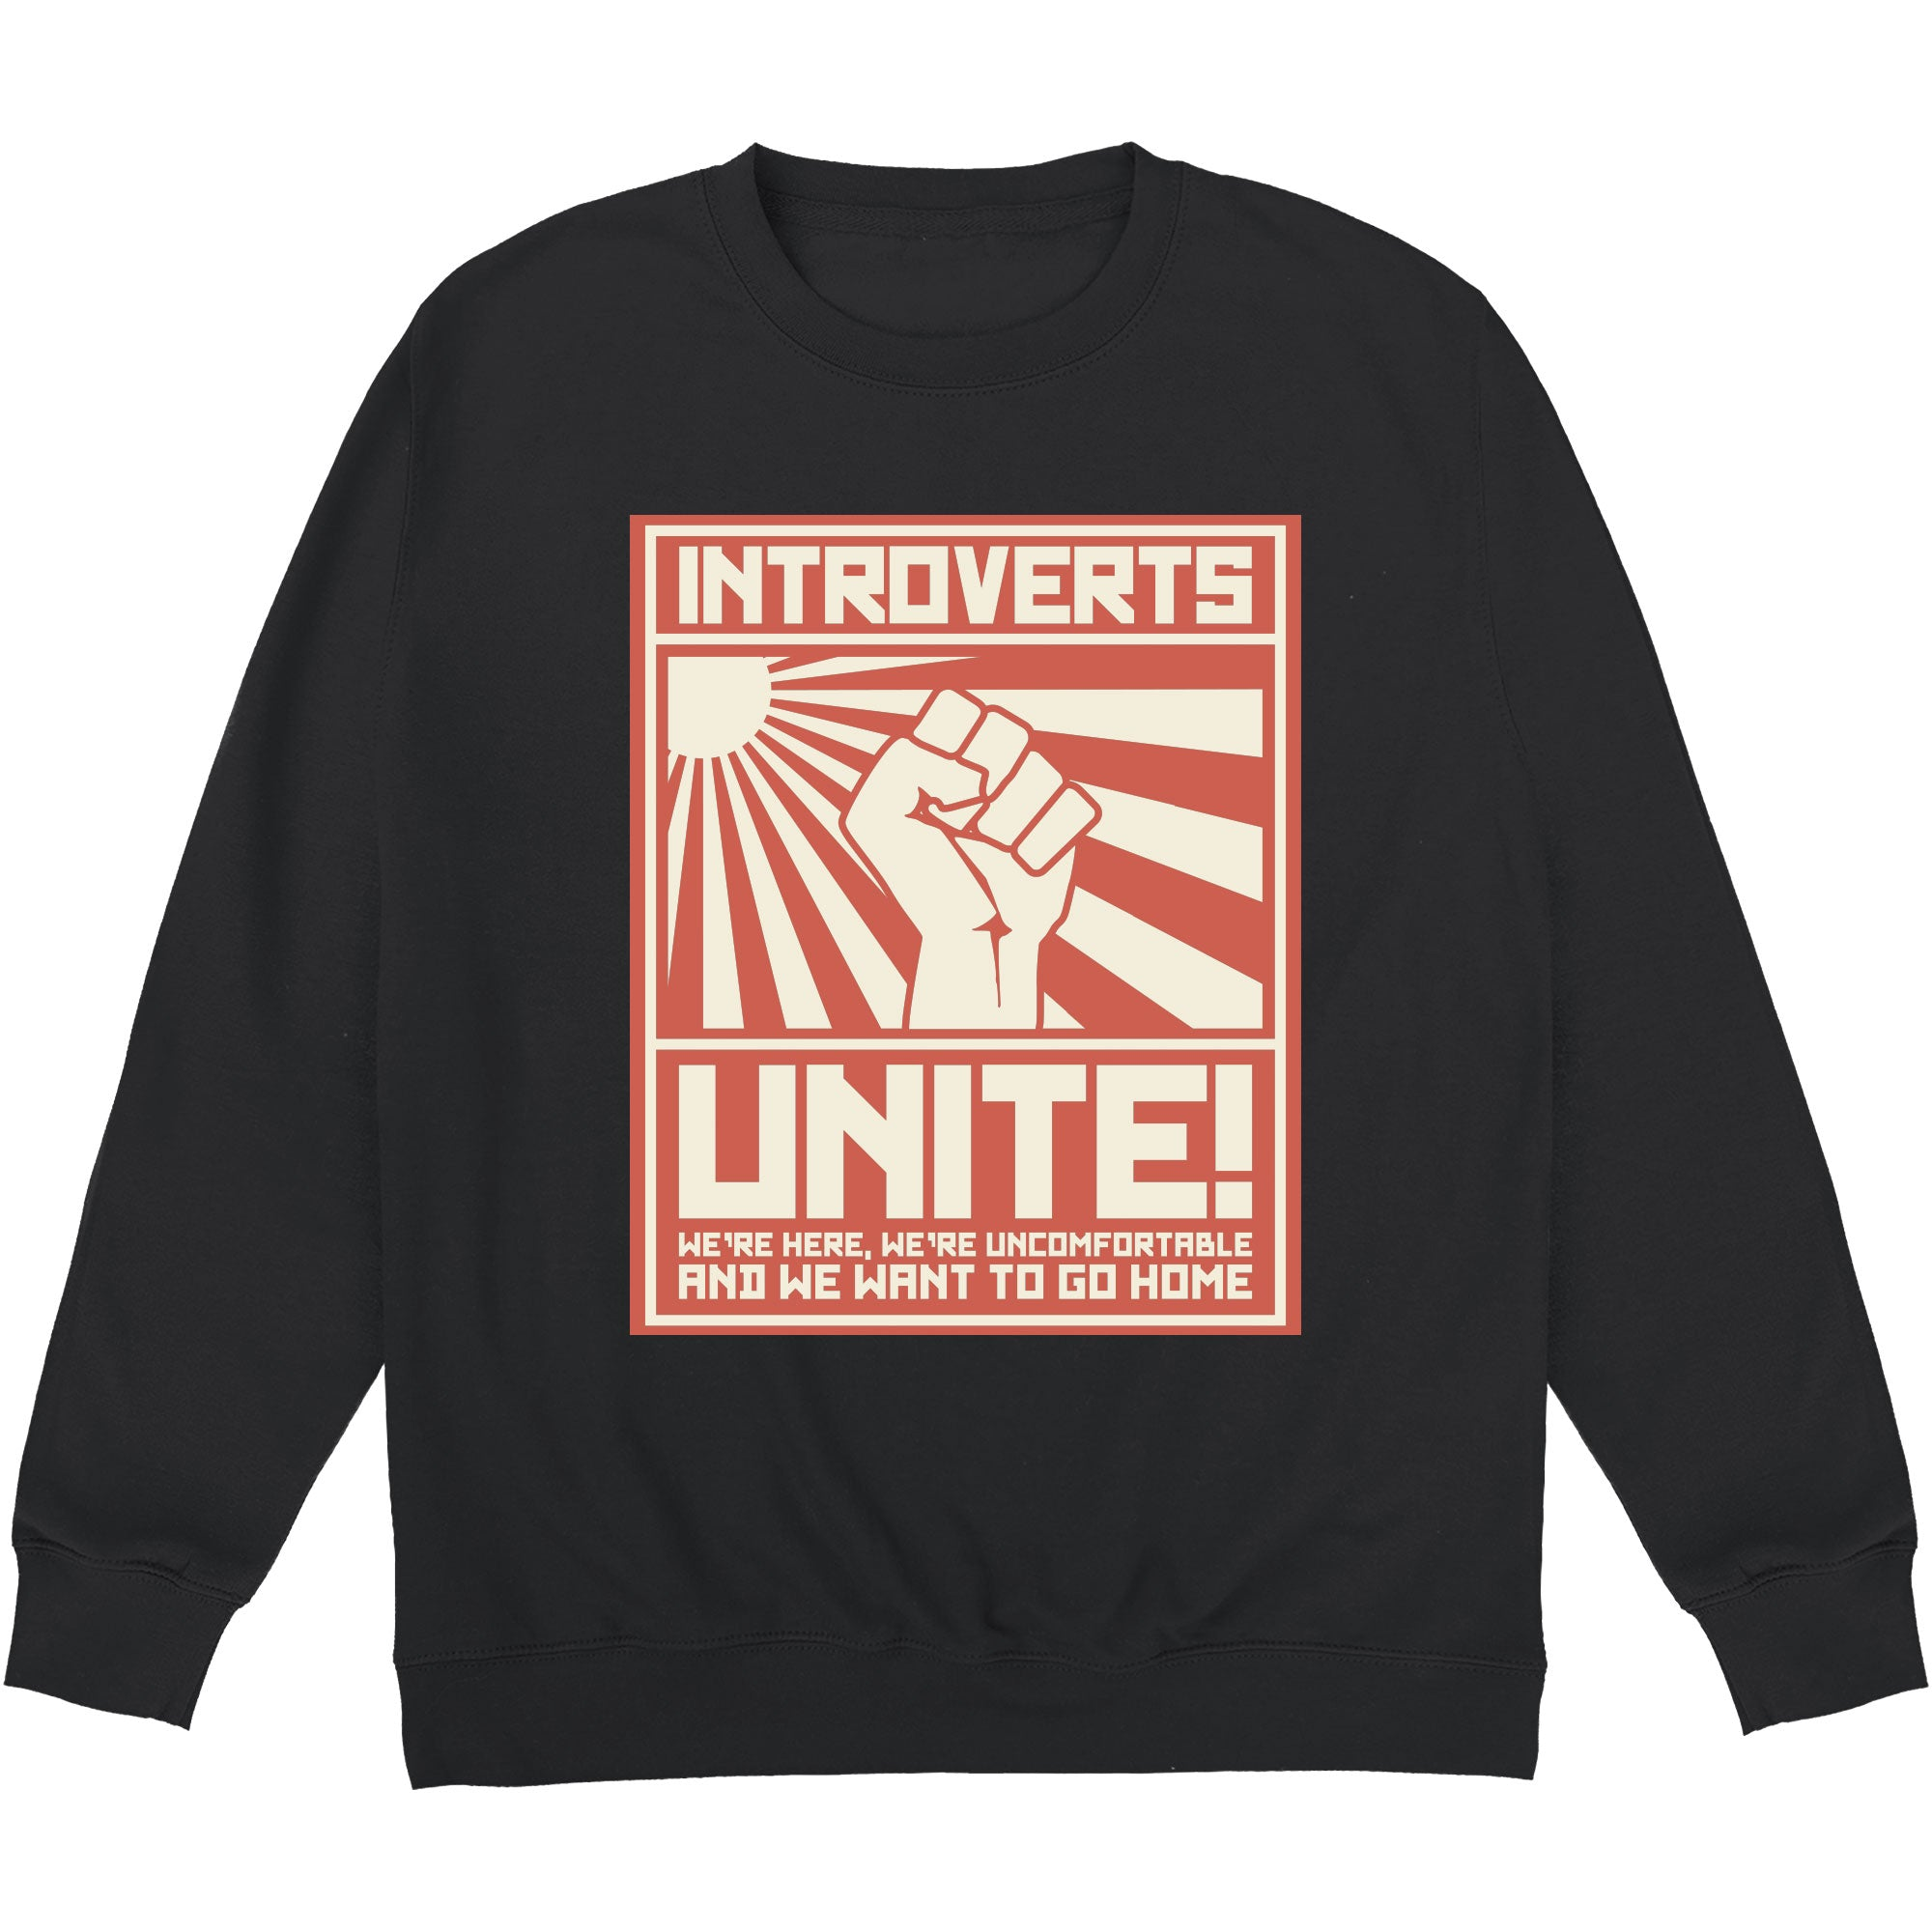 CHEAP Introverts Unite Sweatshirt 24322676891 – Clothing Accessories